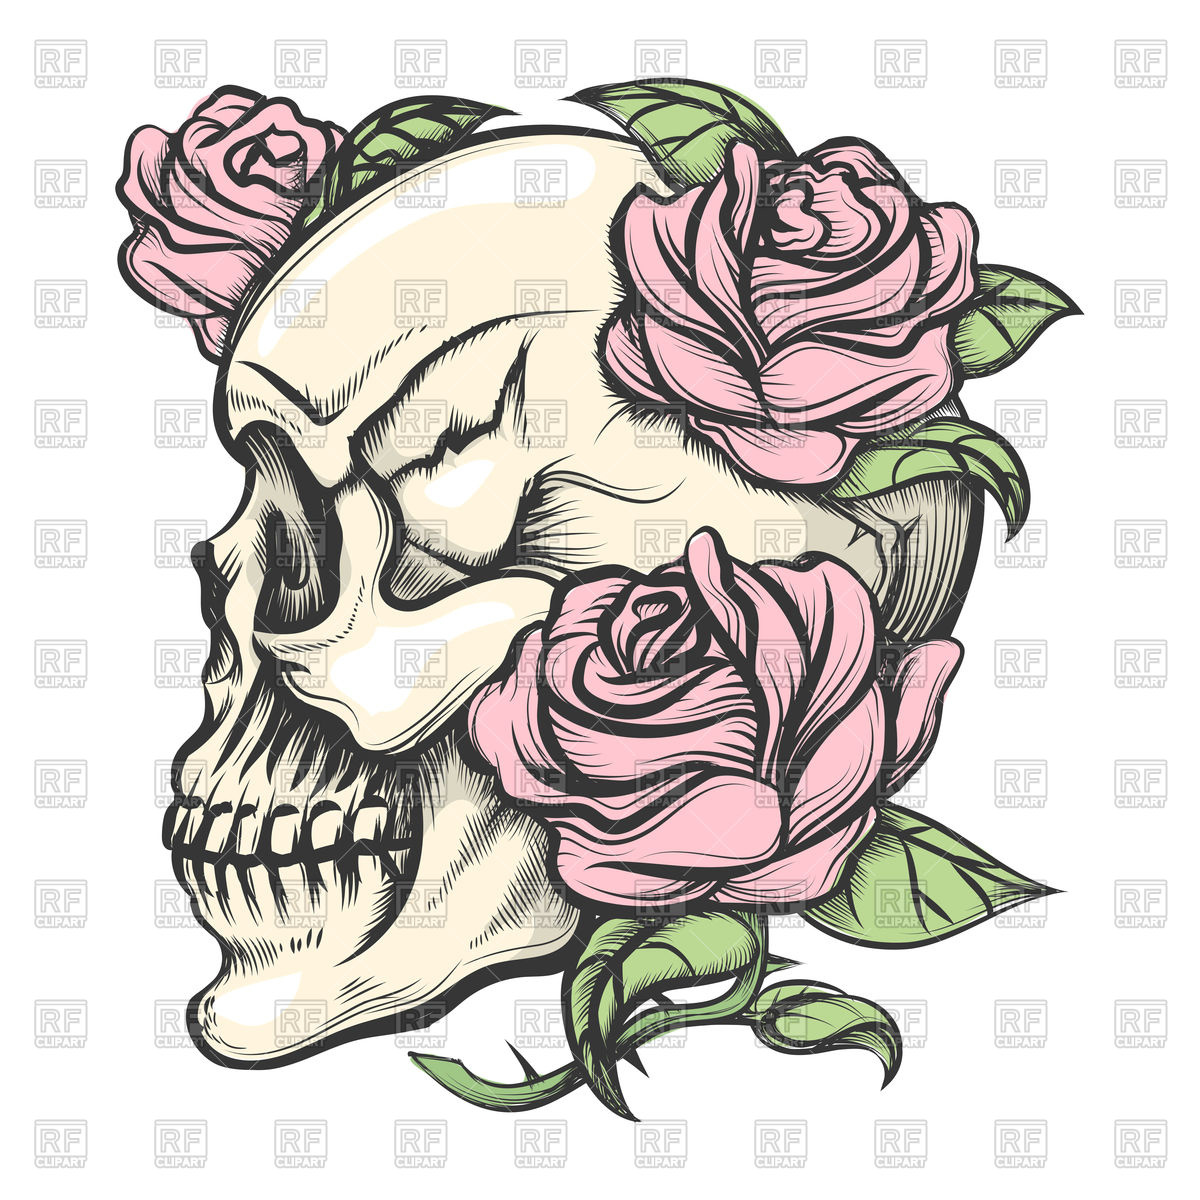 Human skull with roses drawn in tattoo style Vector Image #105236.